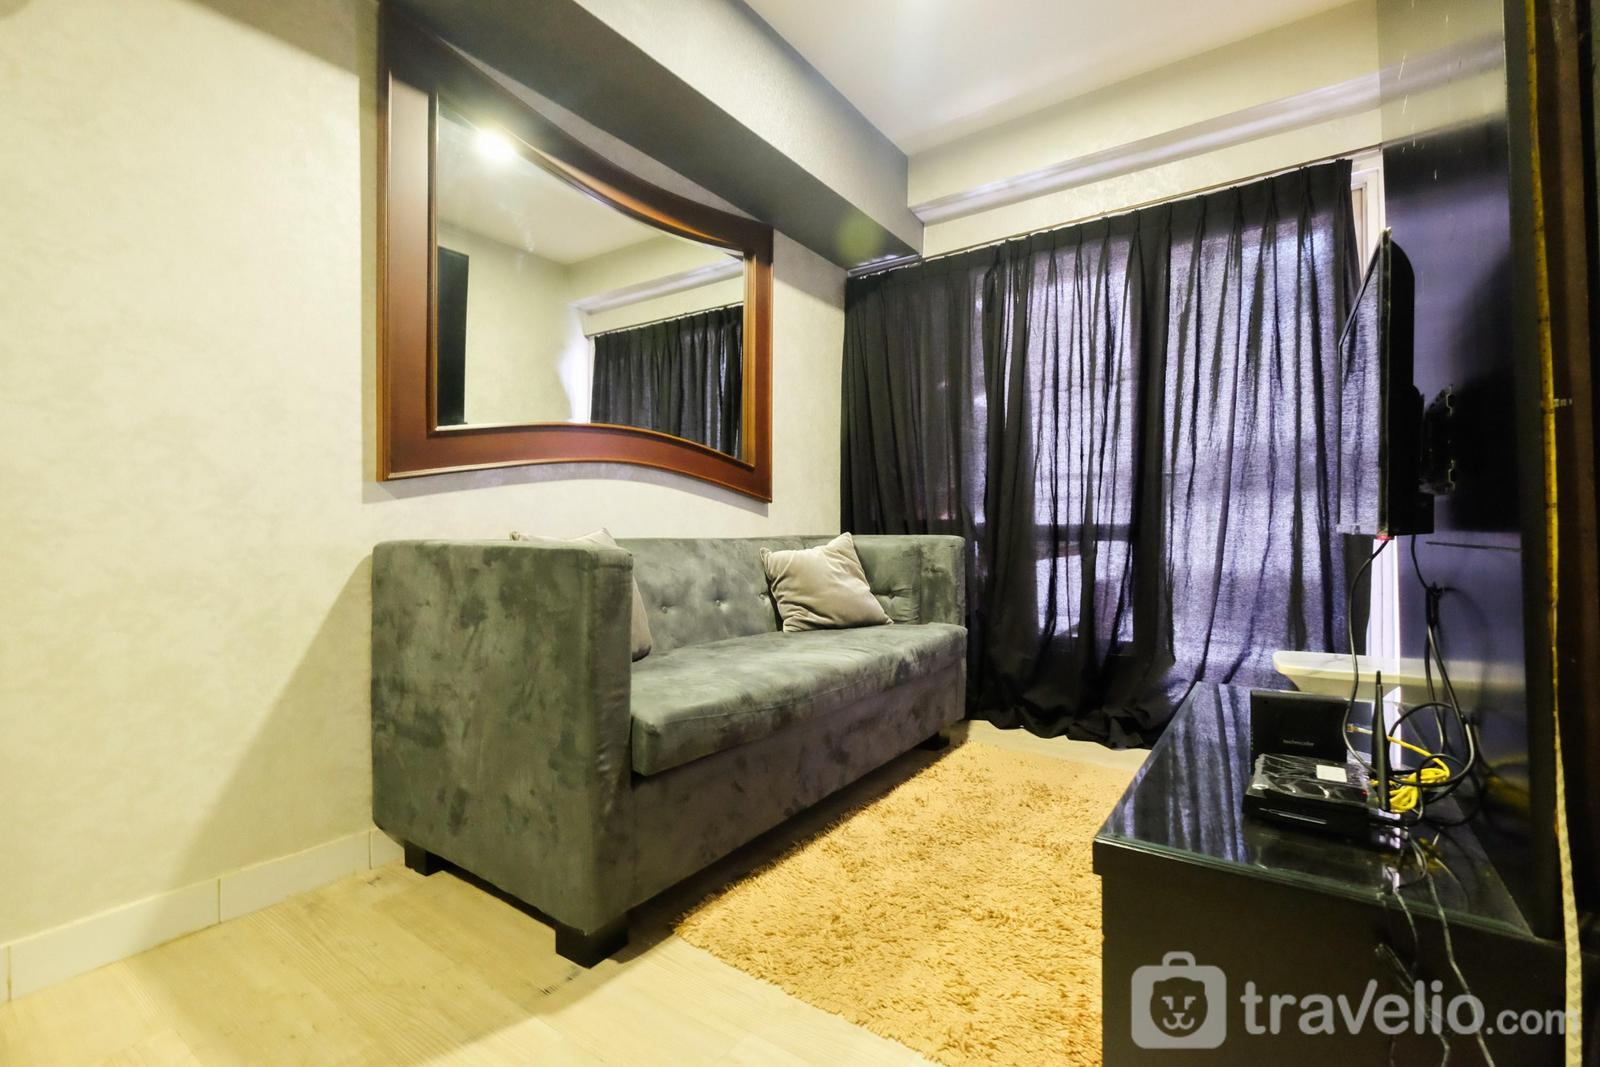 The 18 Residence Taman Rasuna - Tranquil 1BR The 18th Residence Taman Rasuna Apartment By Travelio